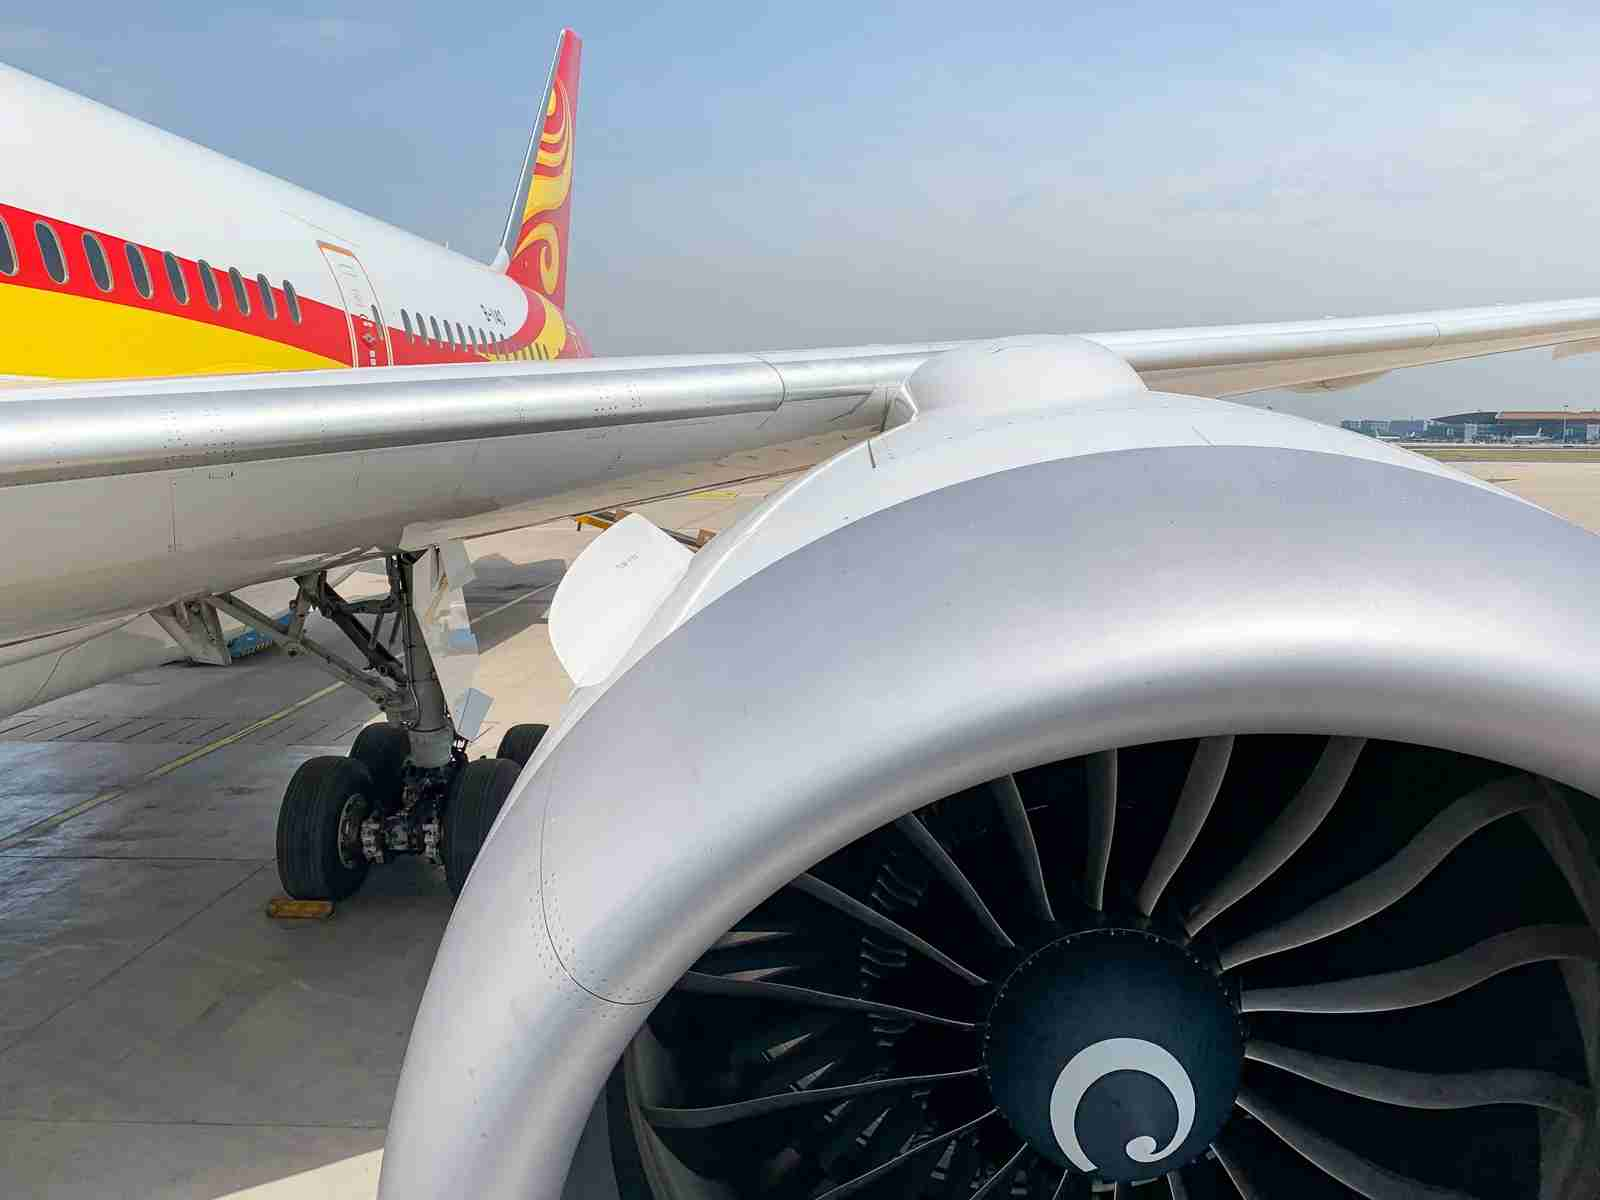 A Hainan Airlines Boeing 787. (Photo by Javier Rodriguez / The Points Guy)